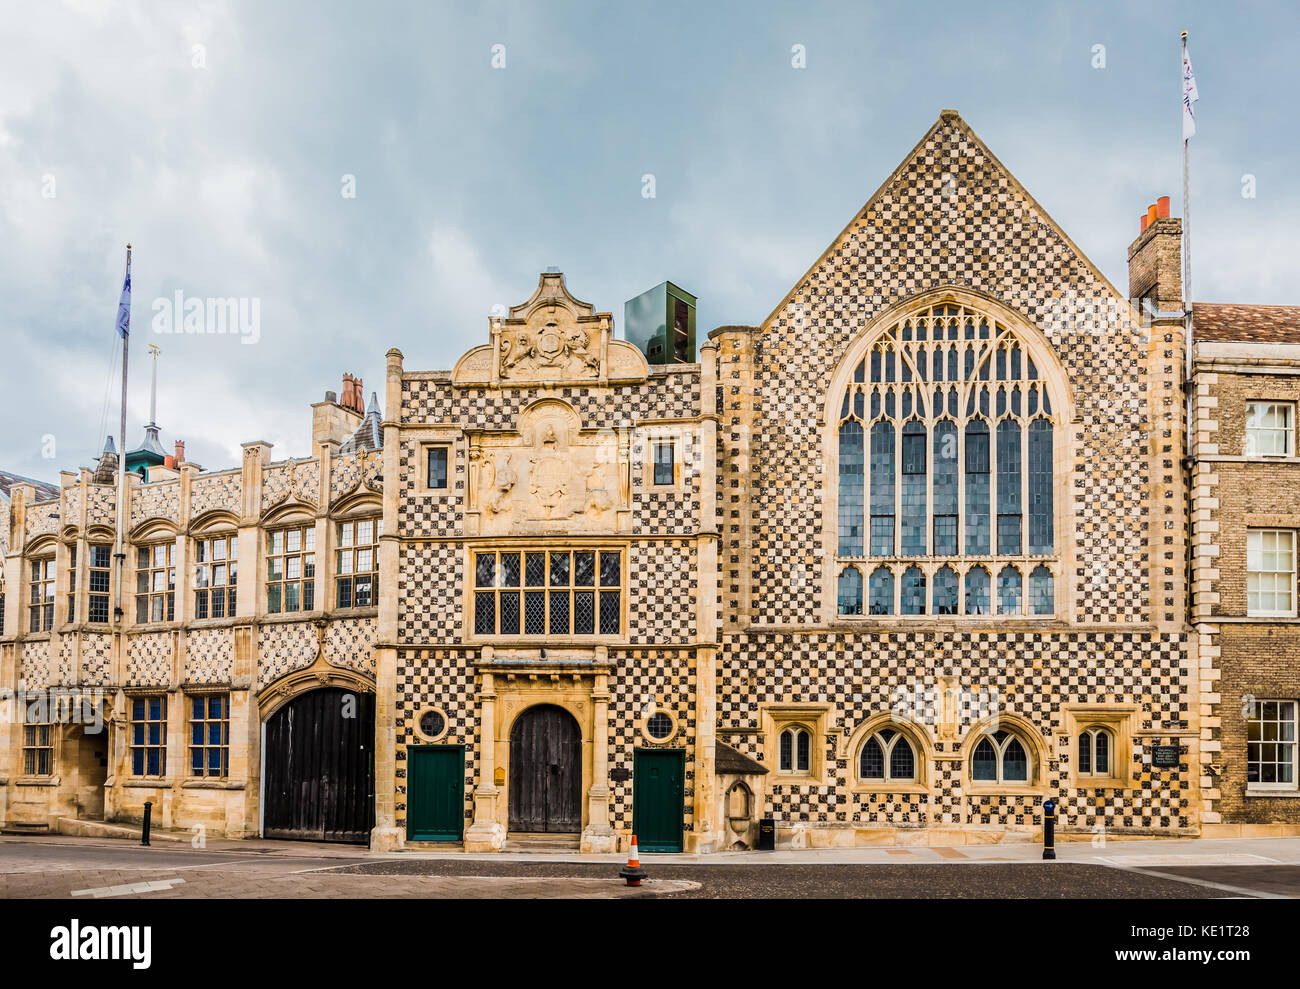 Kings Lynn Guildhall showing medieval English architecture with flint flushwork and chequerboard pattern. - Stock Image